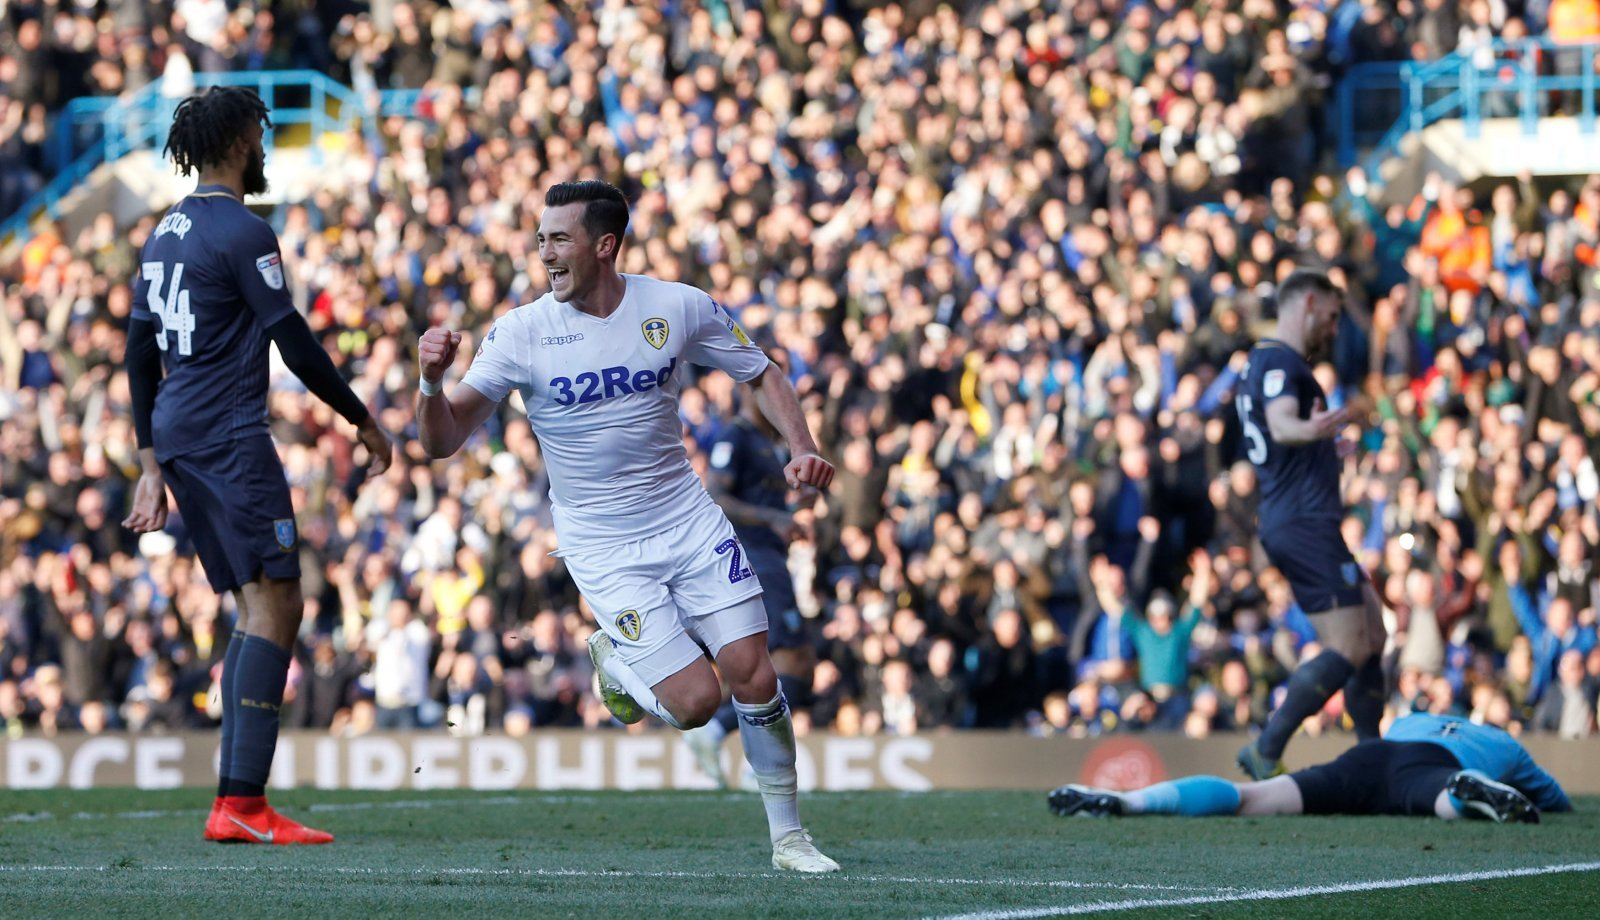 Leeds: Fans discuss Jack Harrison after EFL Team of the Week inclusion